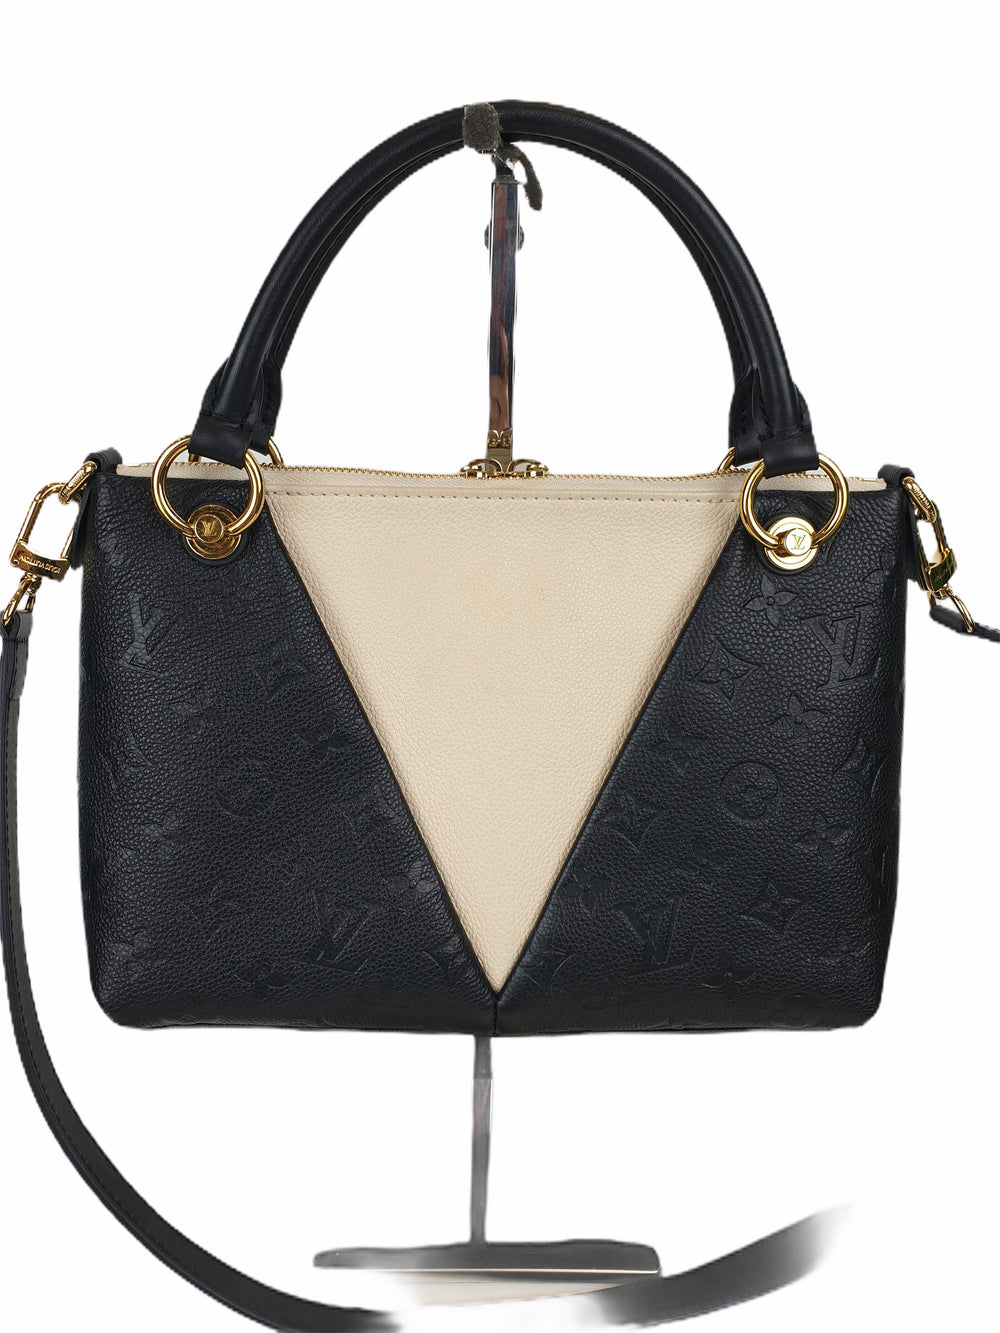 Louis Vuitton Cream and Black Leather